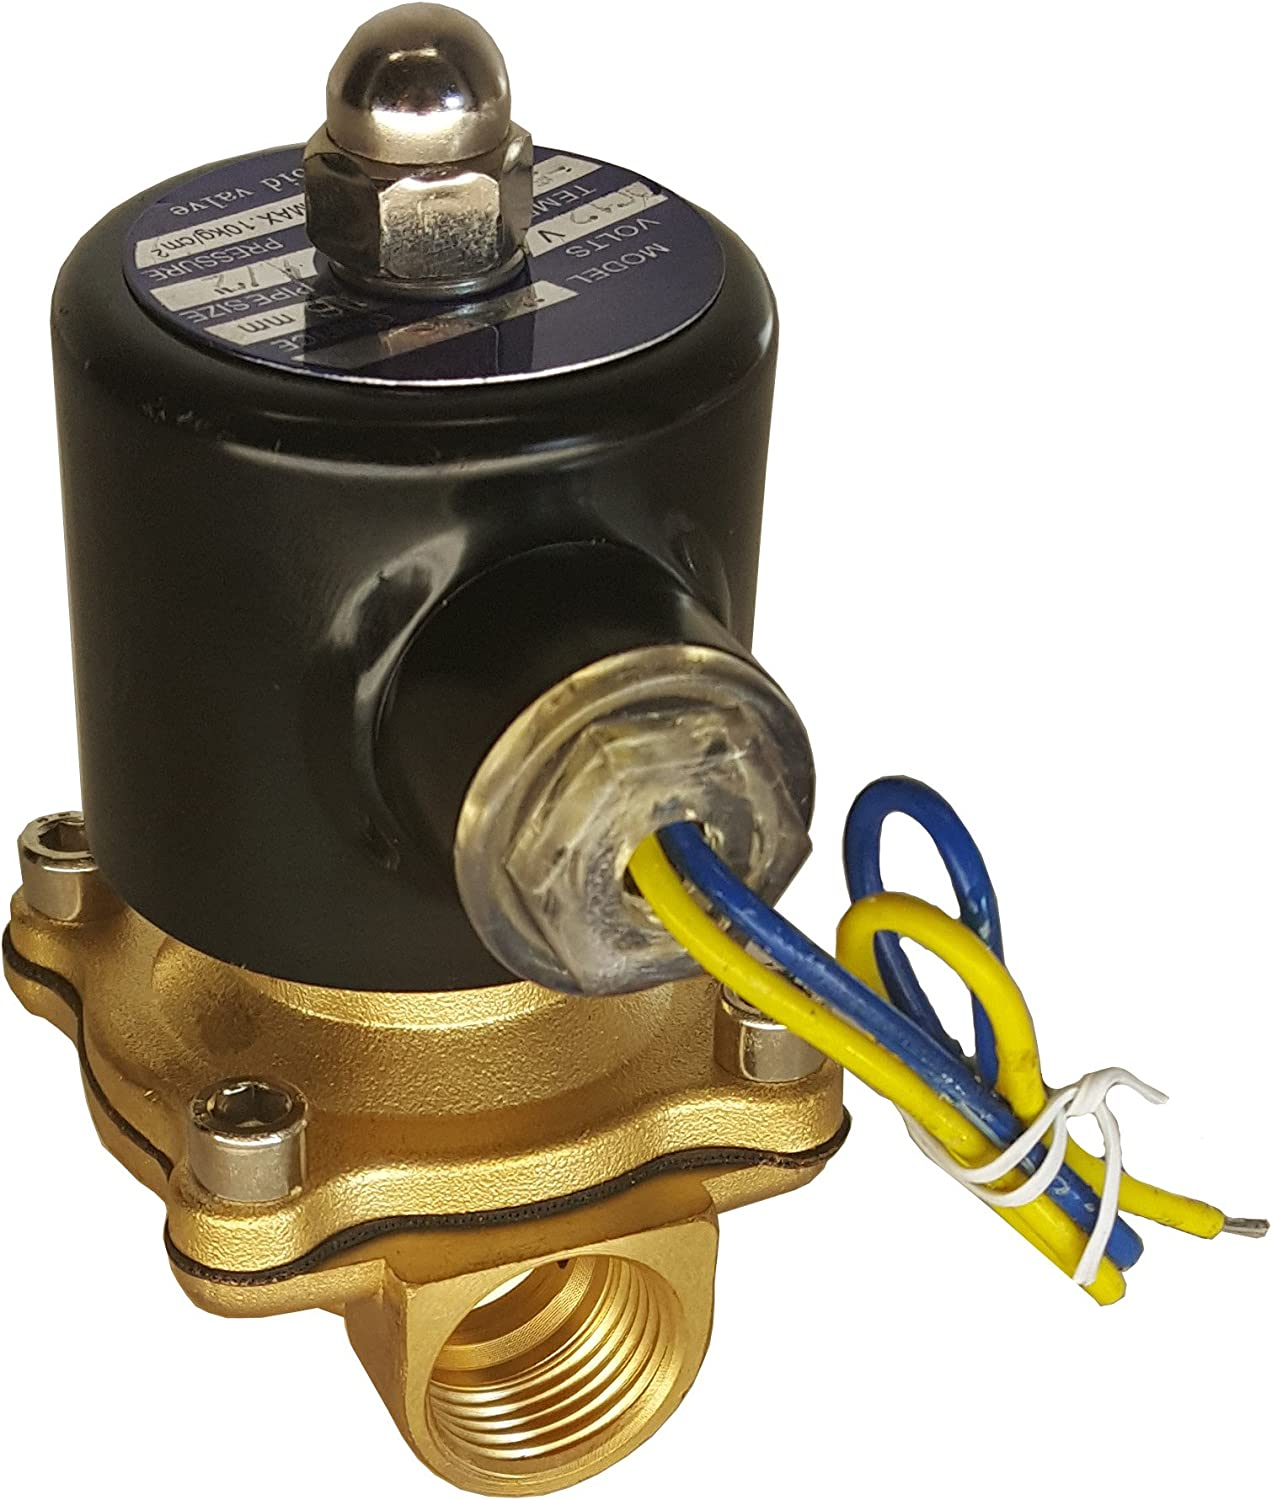 """HFS 110v Ac or 12v Dc Electric Solenoid Valve Water Air Gas, Fuels N/c - 1/4"""", 1/2"""", 3/4"""", 1"""" NPT Available (110V AC 3/4"""" NPT)"""